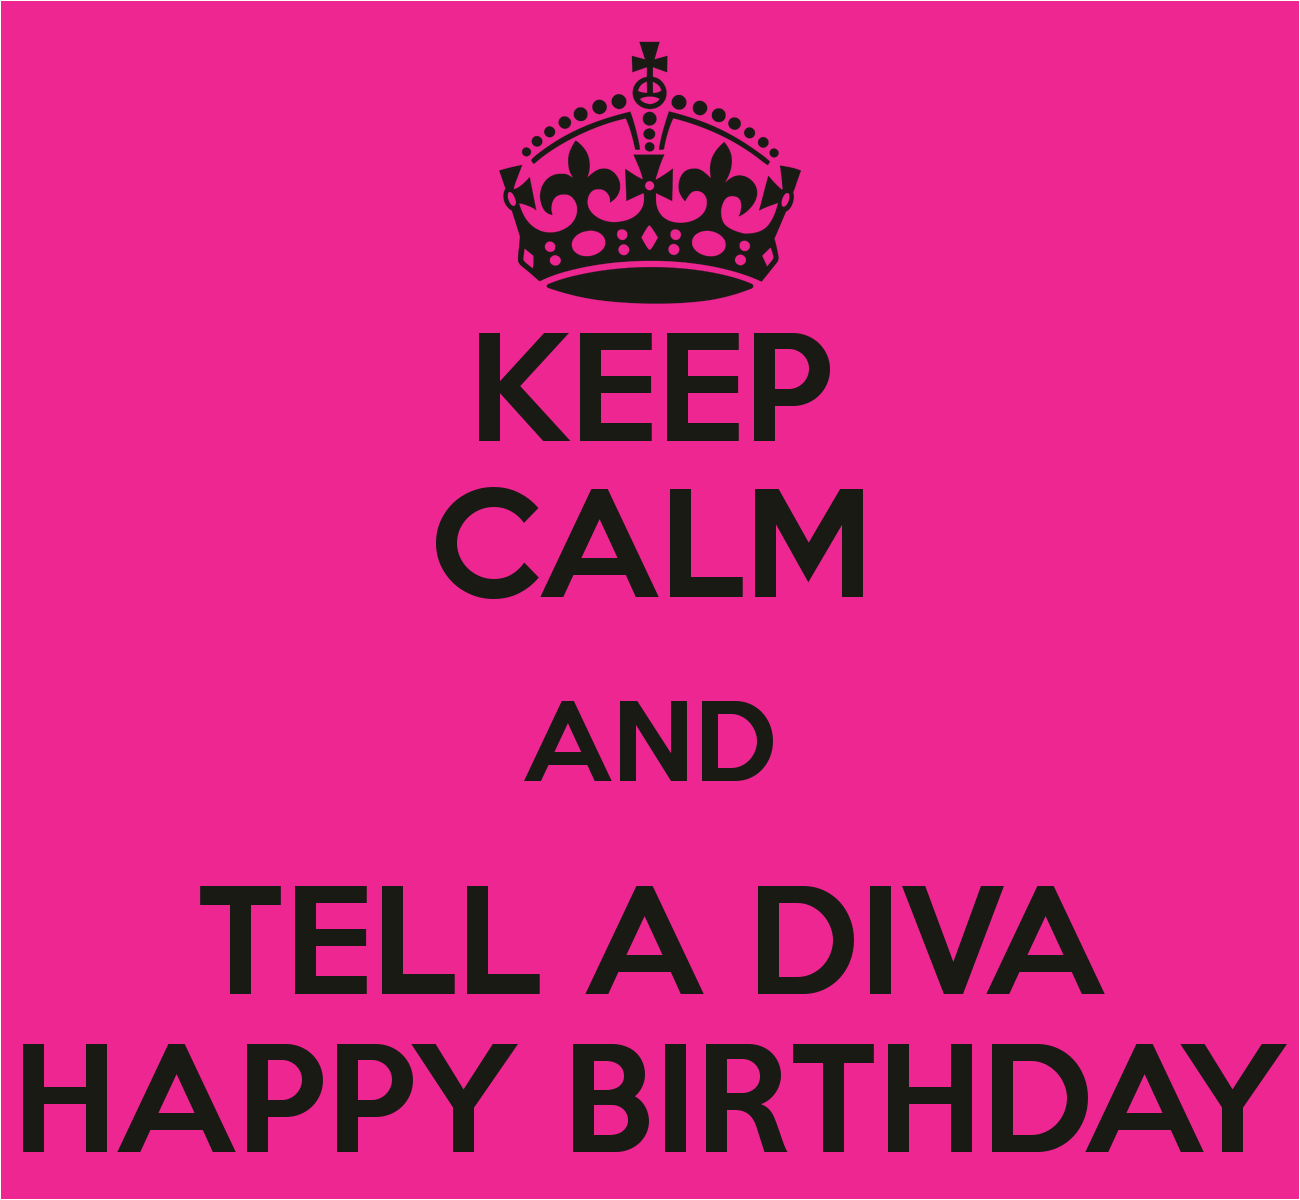 for a birthday diva quotes